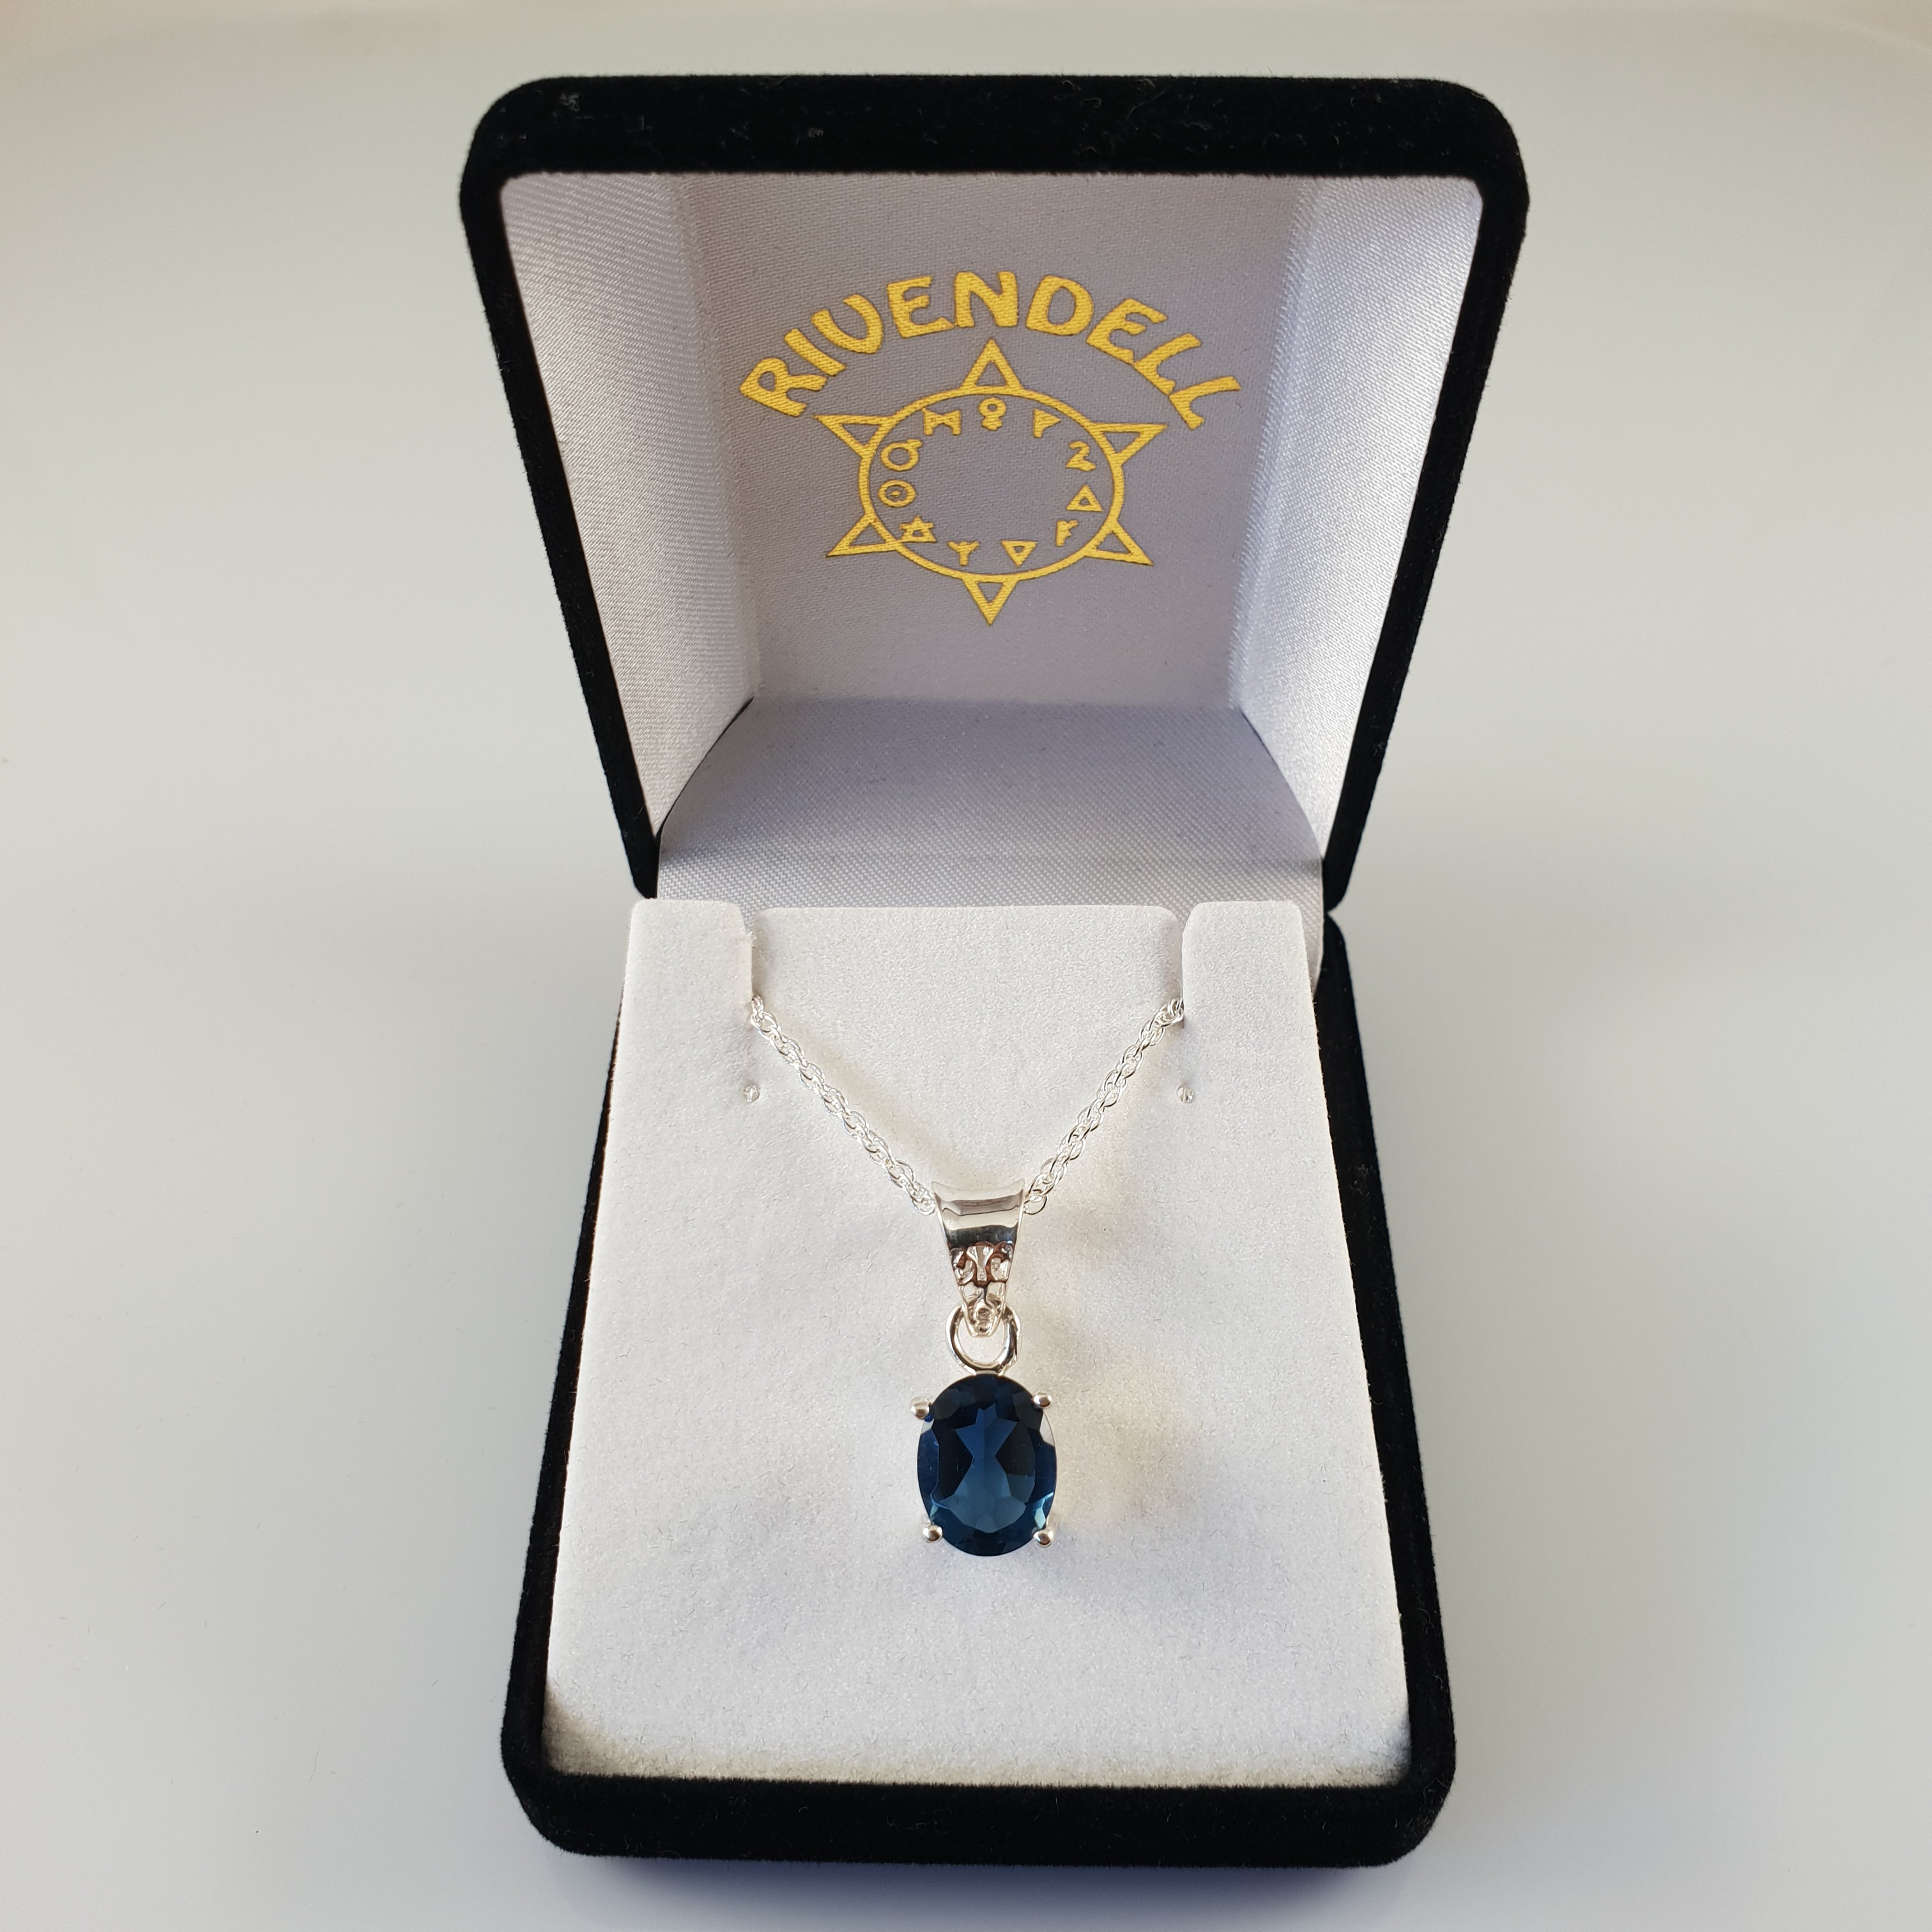 Petite Oval Iolite 925 Stirling Silver Pendant